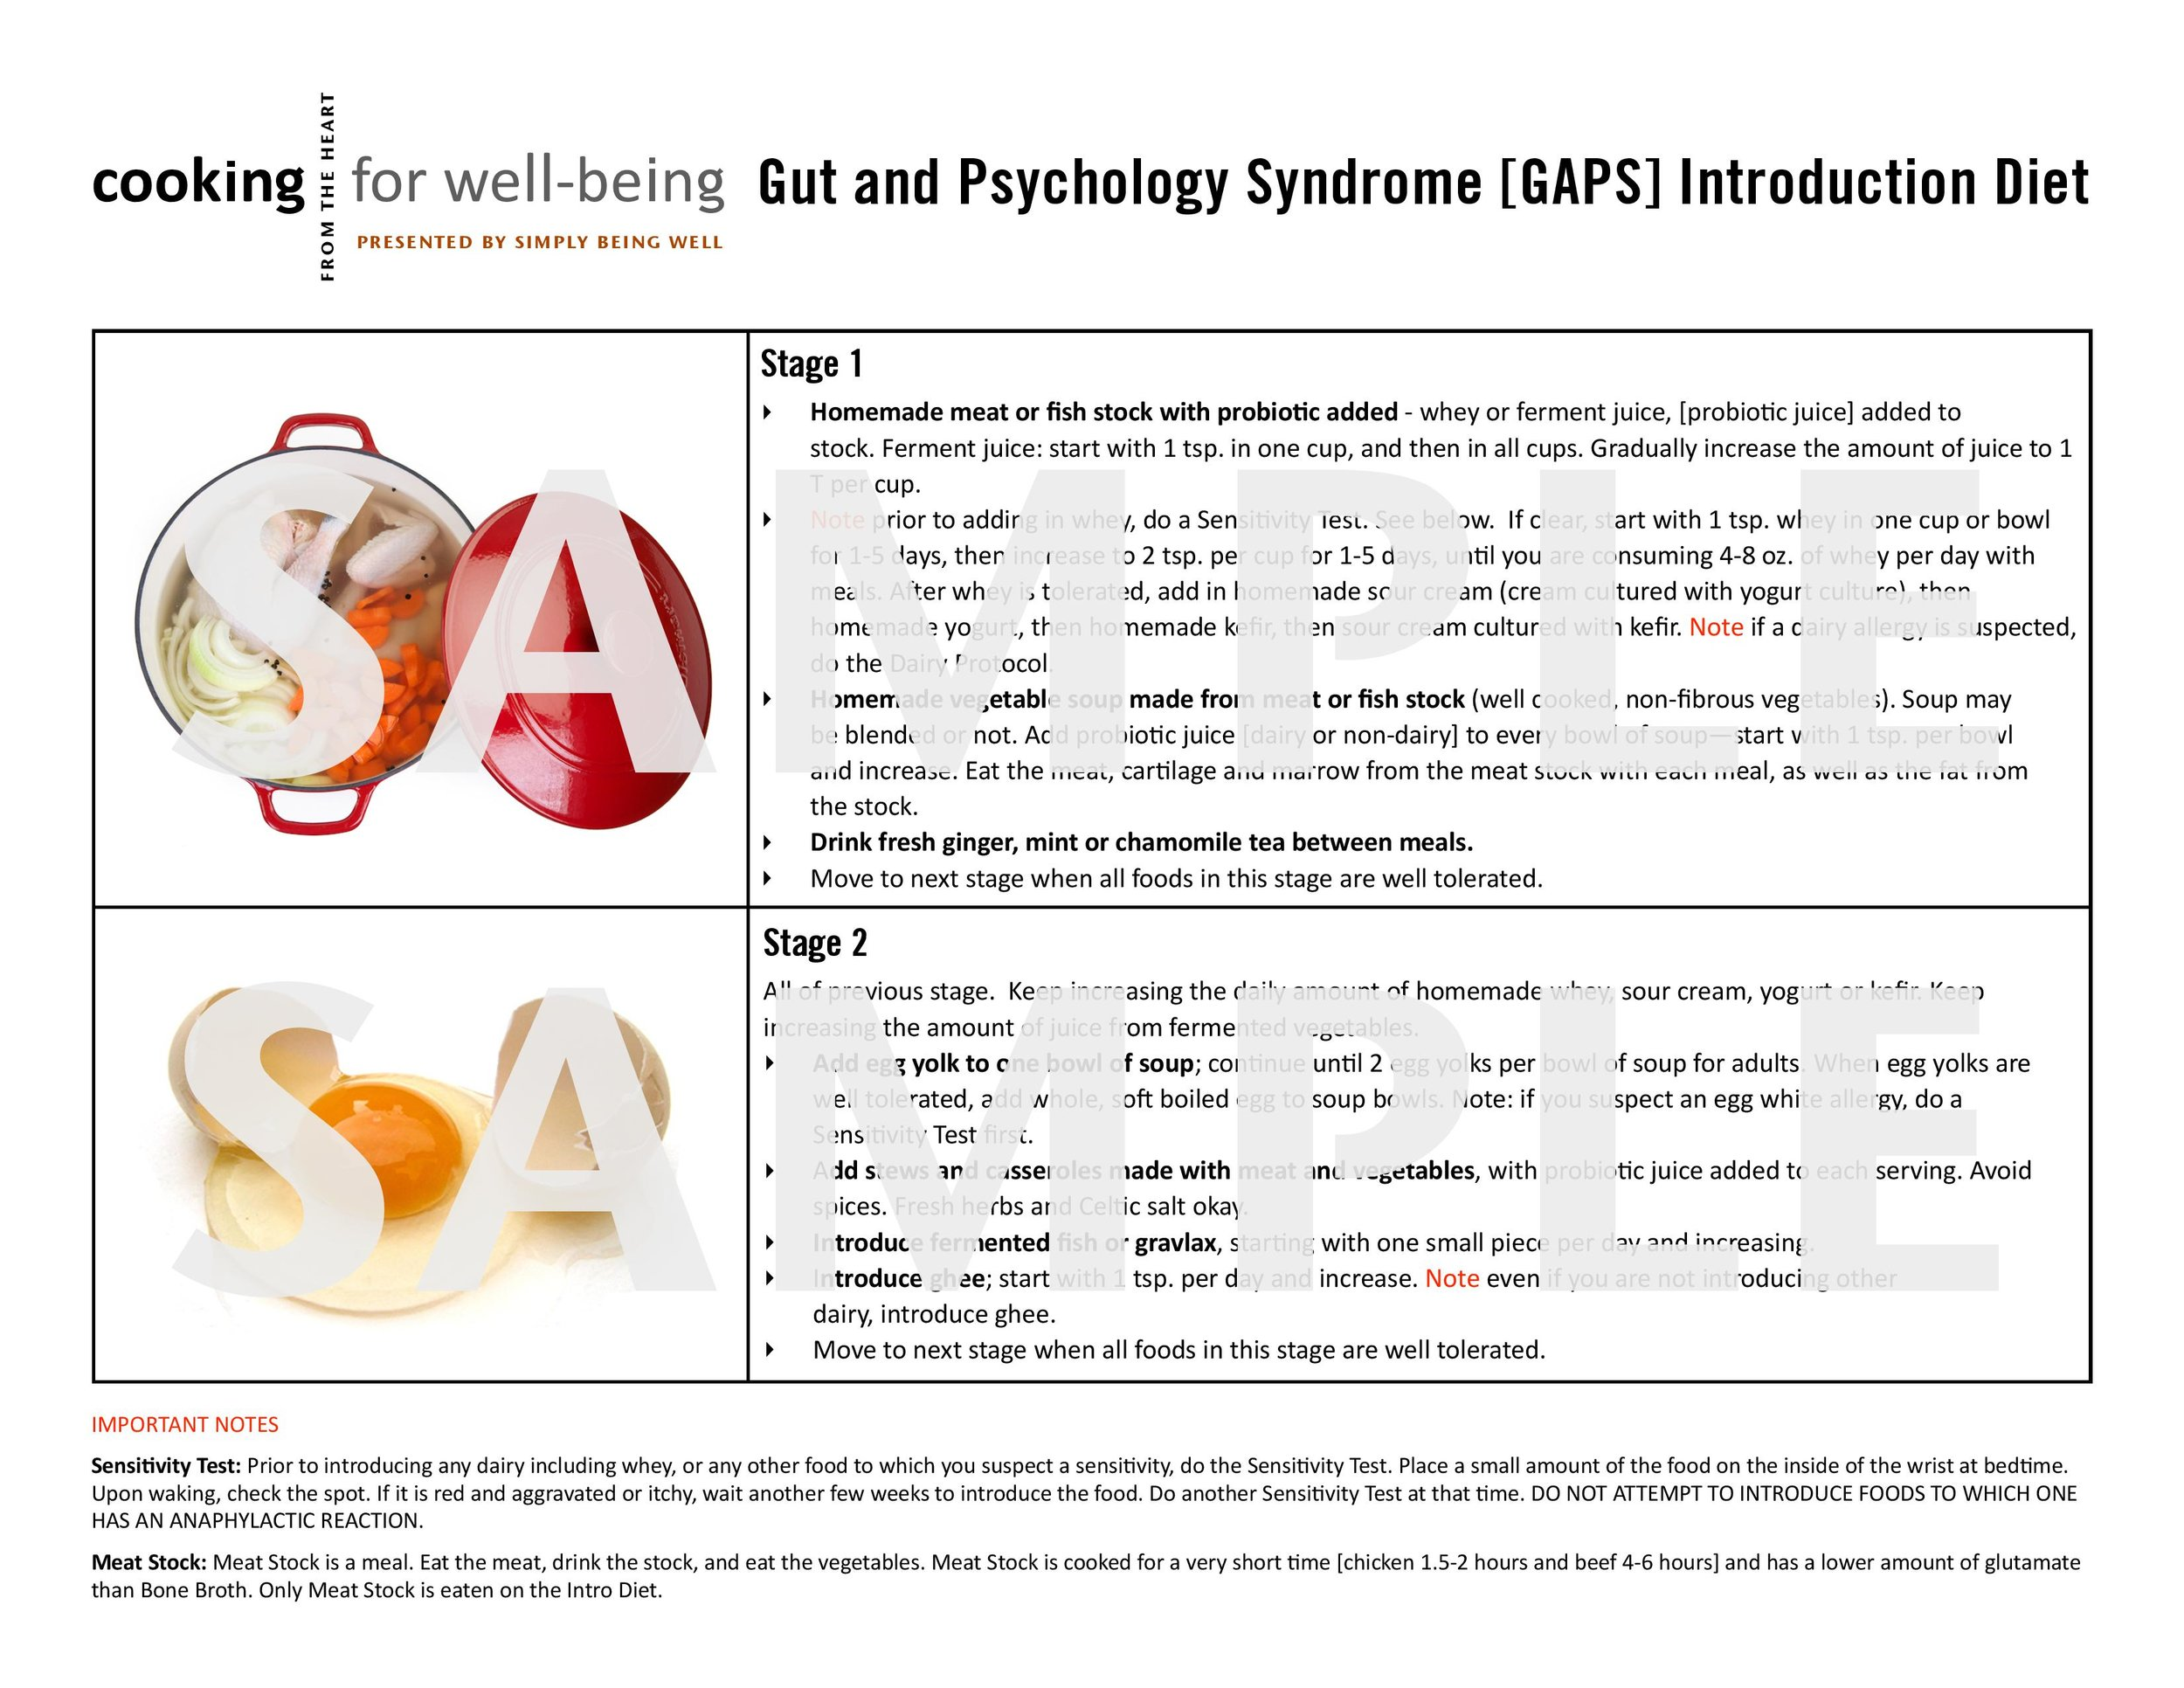 The GAPS Intro Diet Chart! Purchase one  here